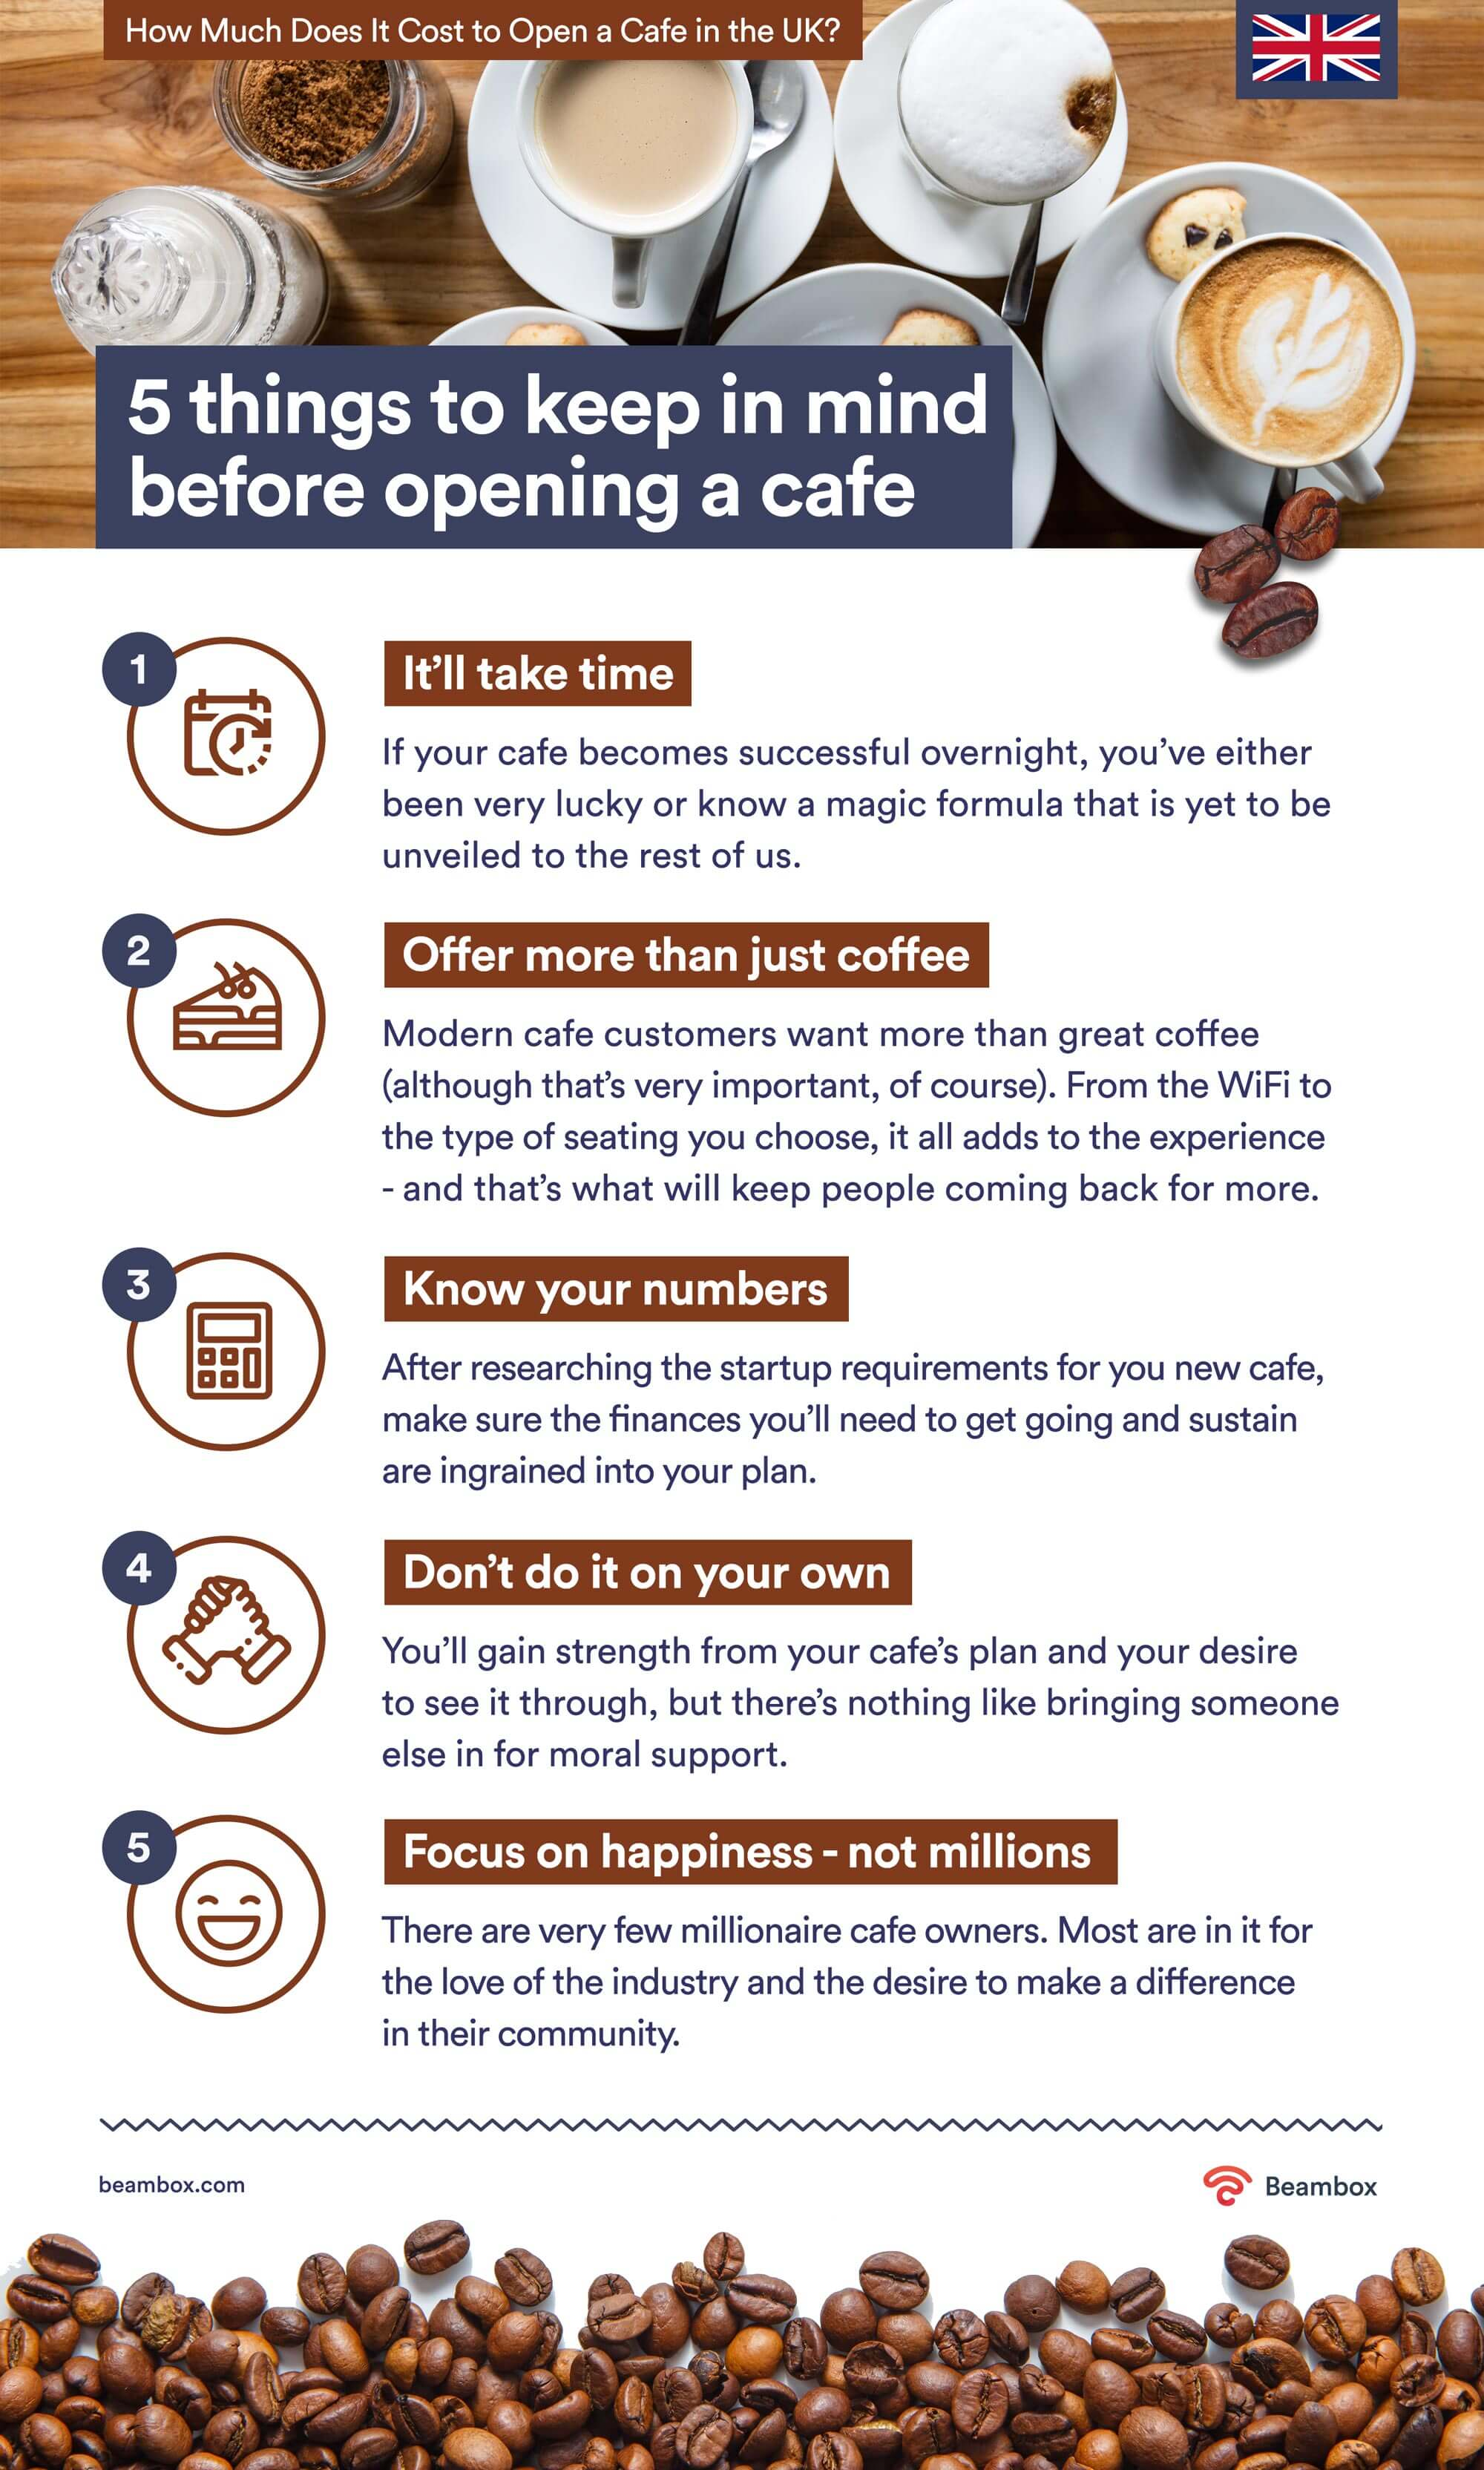 what to keep in mind before opening cafe uk